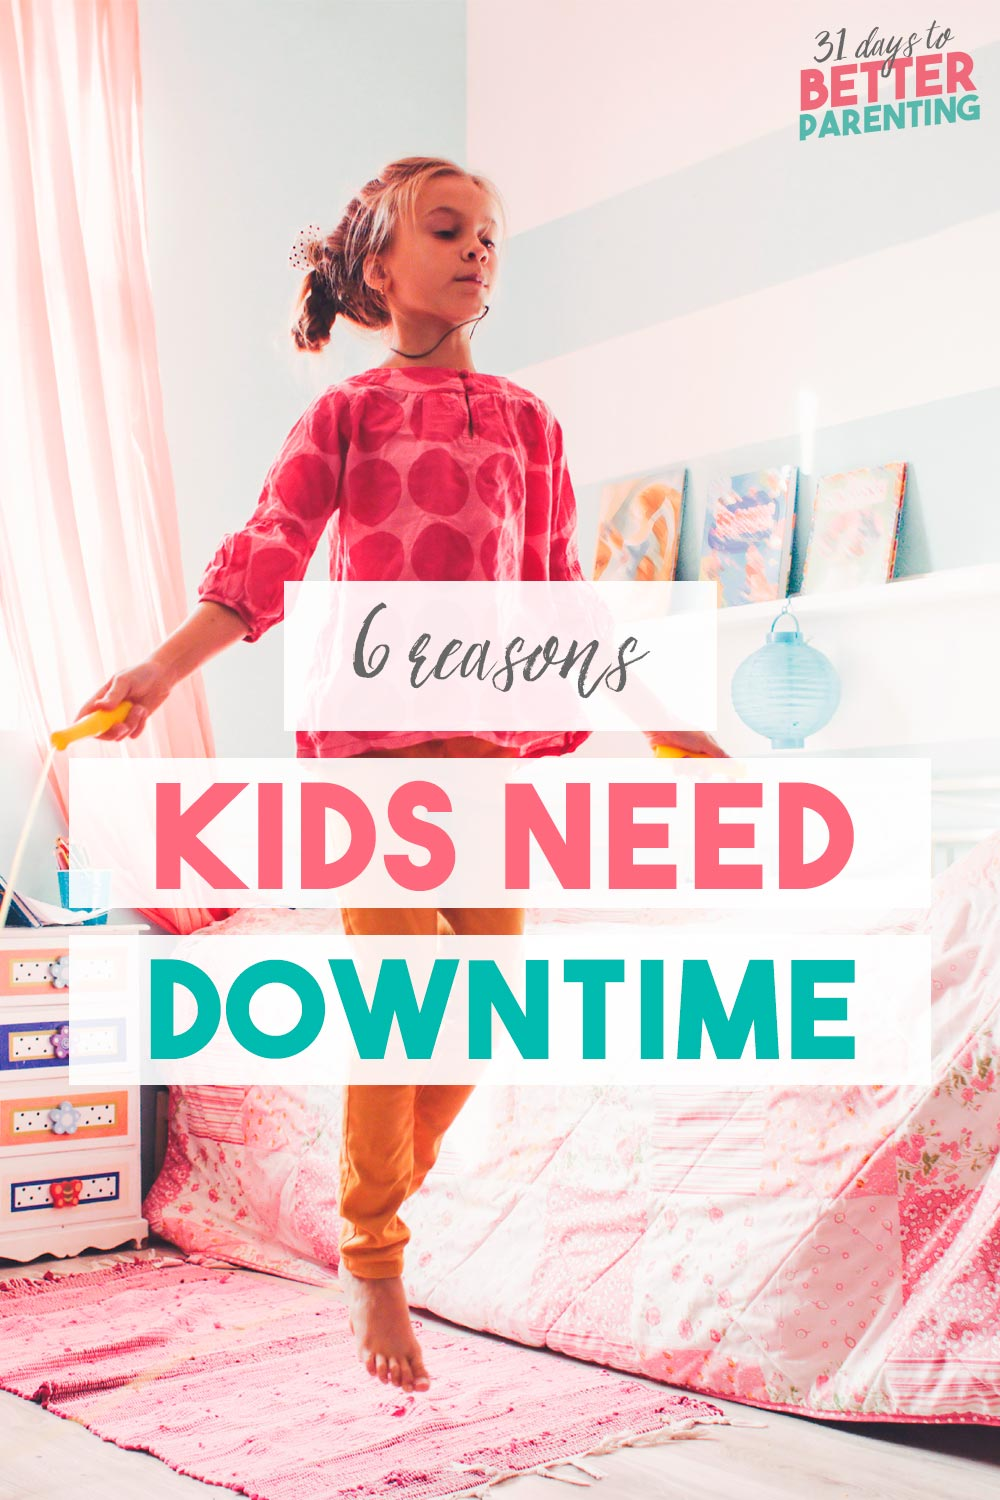 Is your schedule stressful with too many activities? Learn 4 reasons kids need downtime — and how to incorporate it in your days.